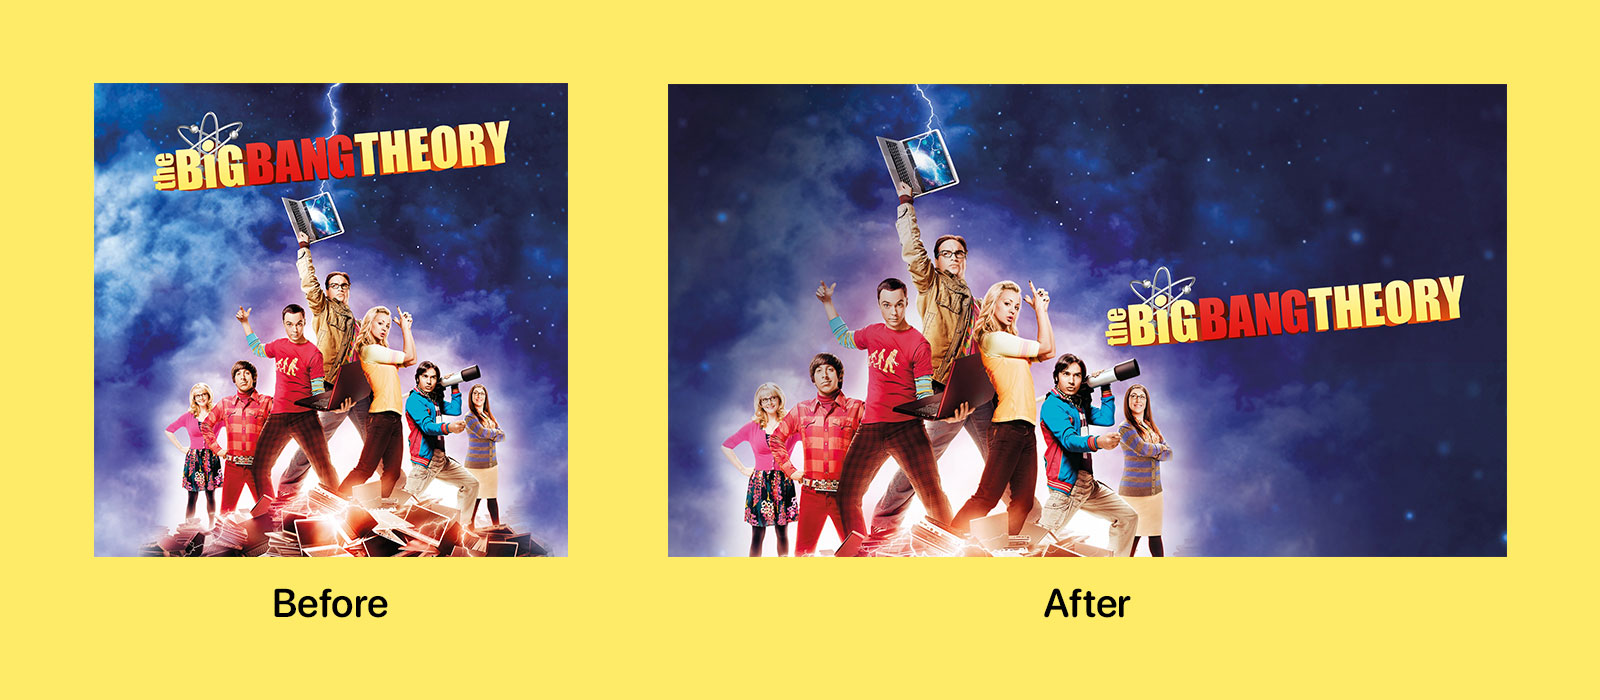 The Big Bang Theory artwork before and after the iOS 12.3 TV update